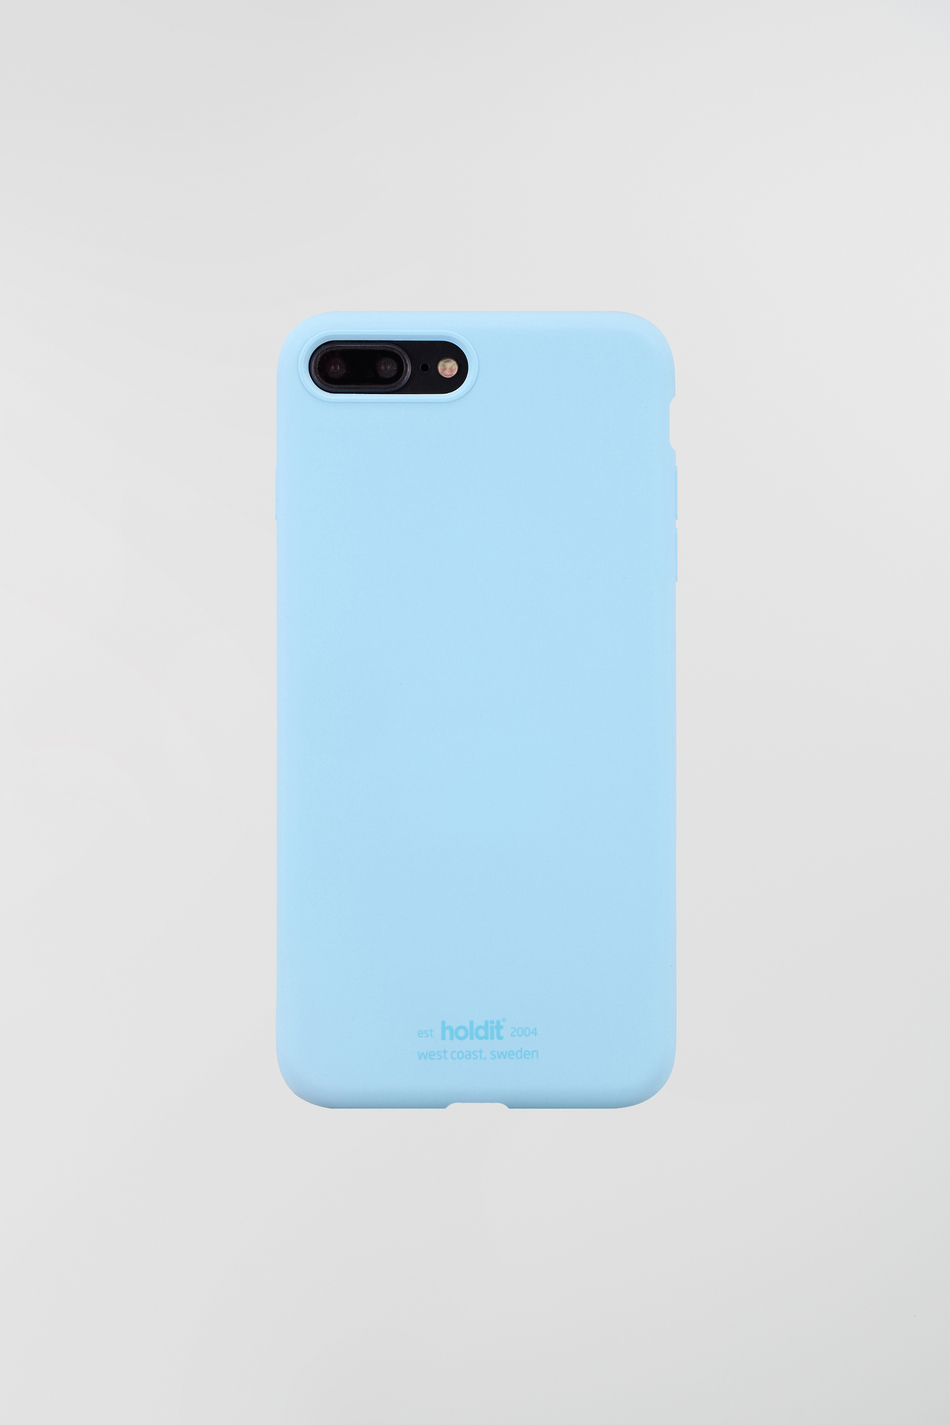 Gina Tricot Holdit iphone 7/8 Plus silicone case